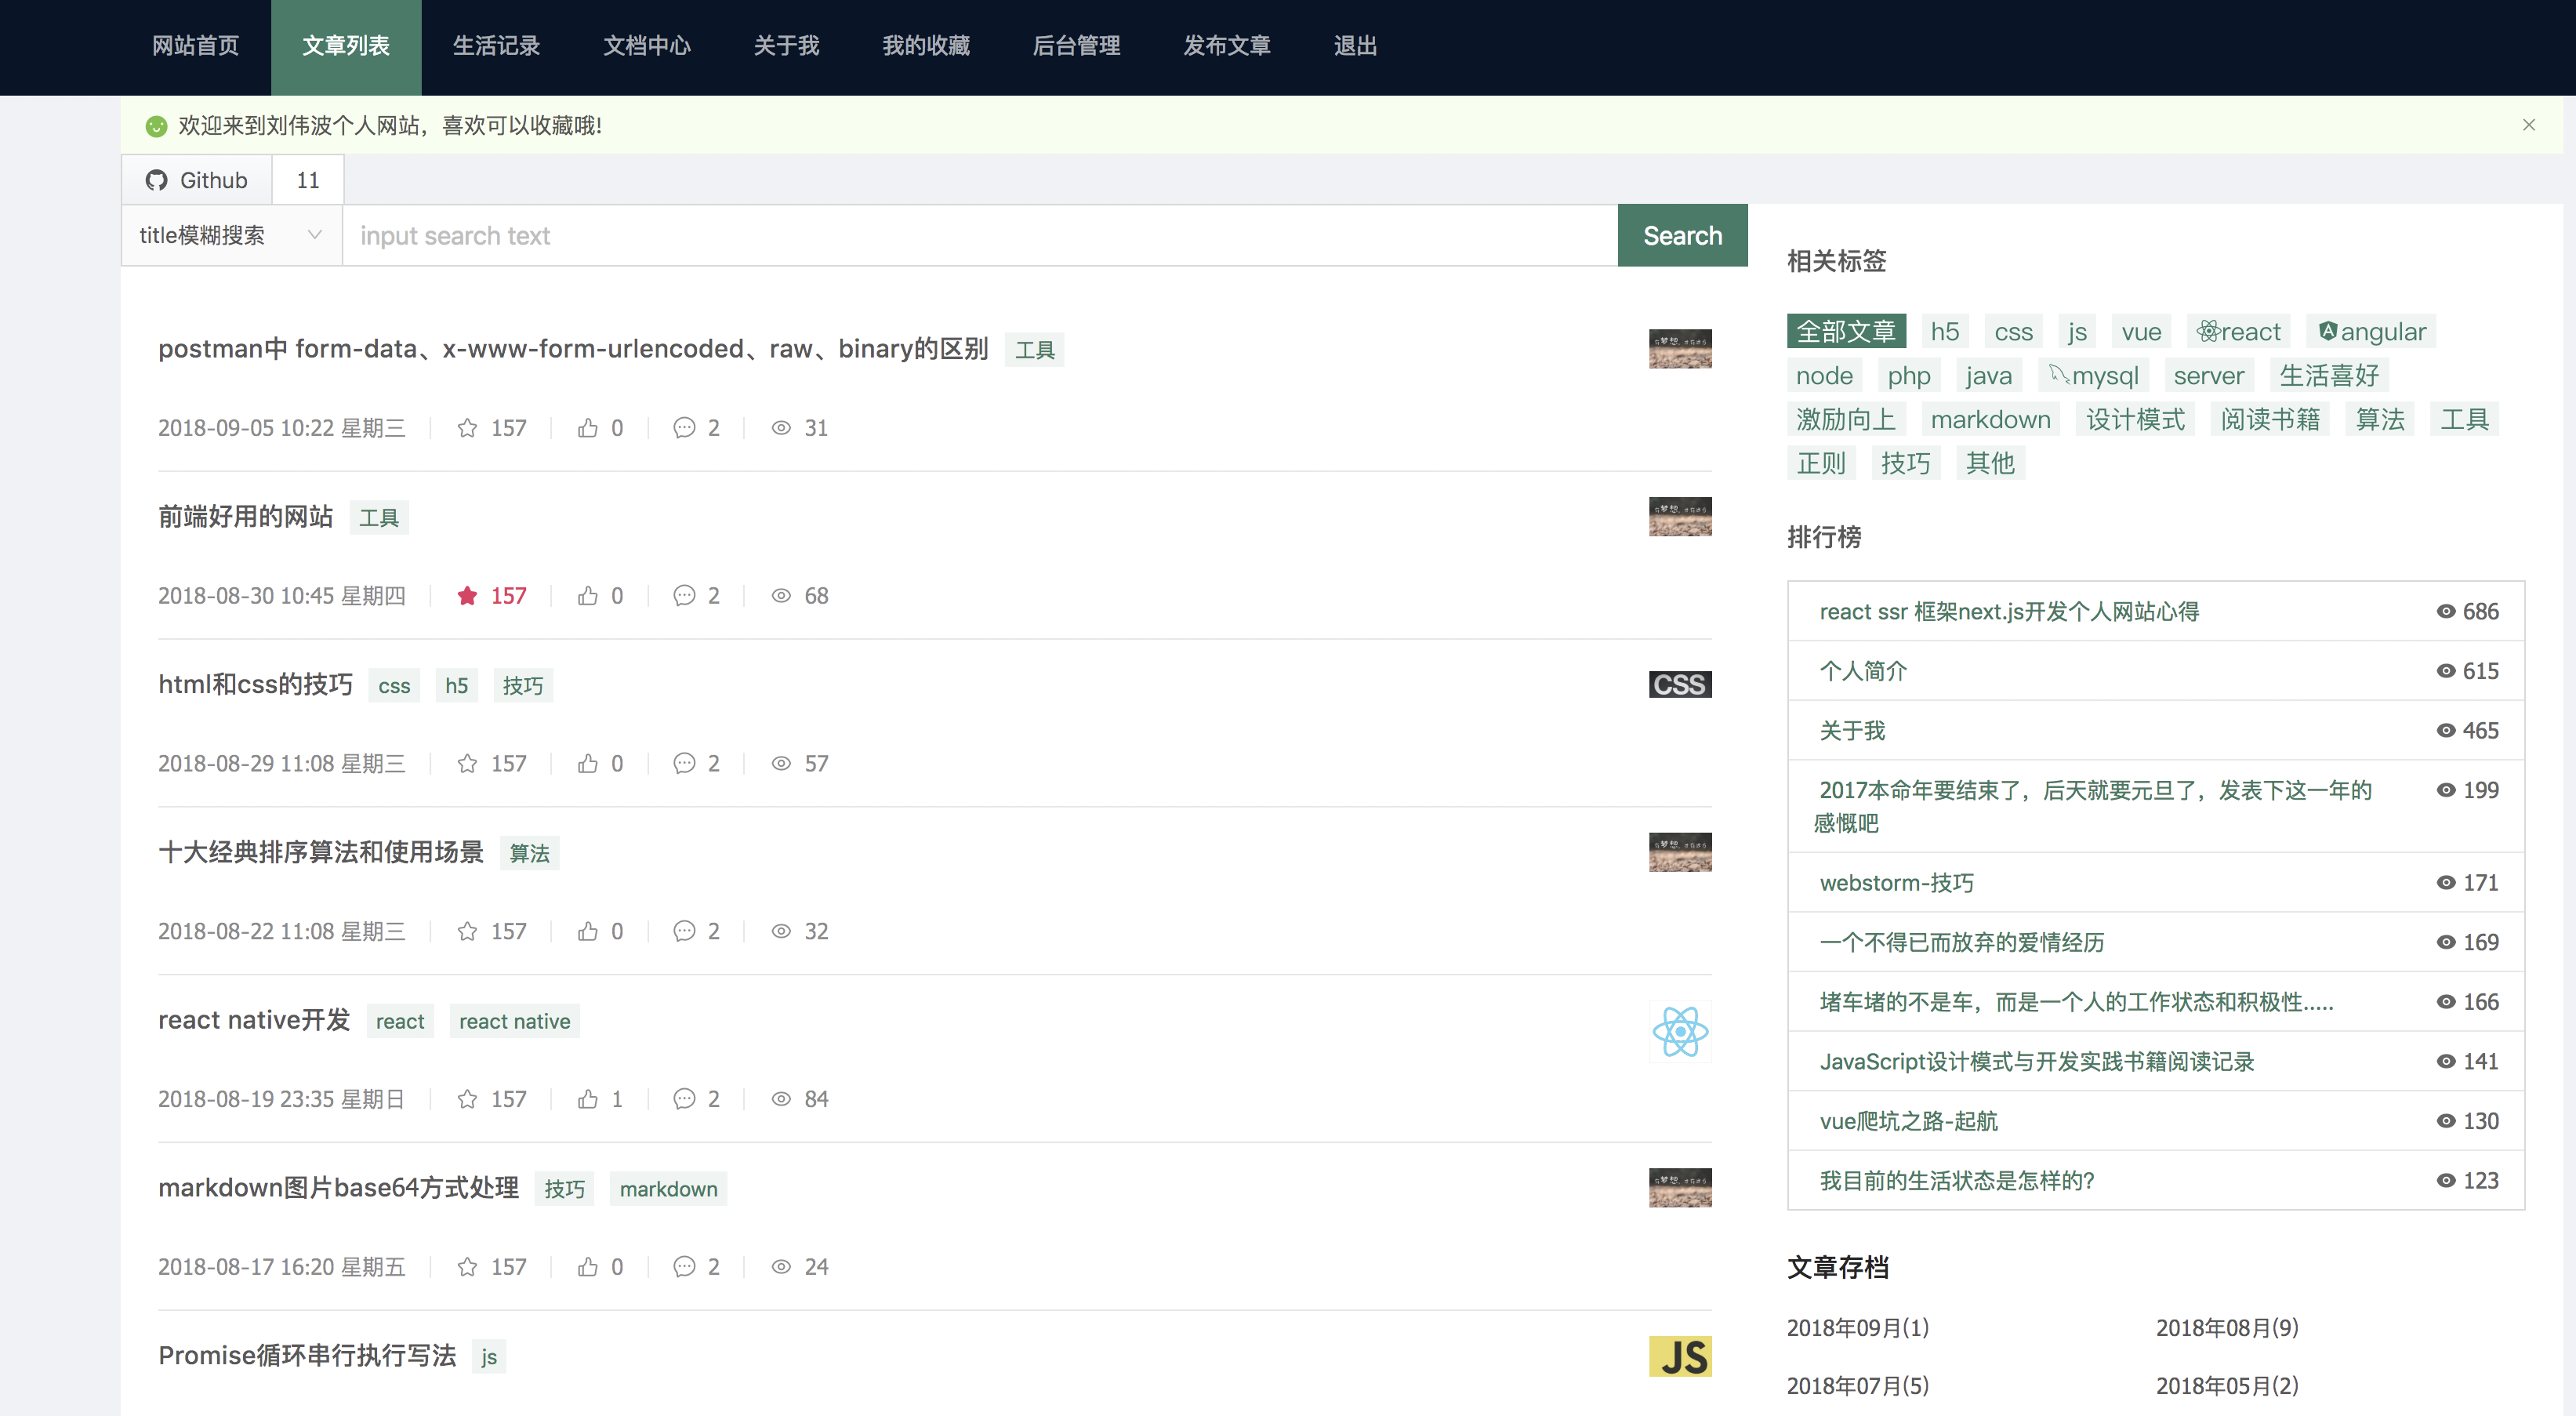 http://images.liuweibo.cn/image/common/list_1536836639000_822188_1536836780676.png